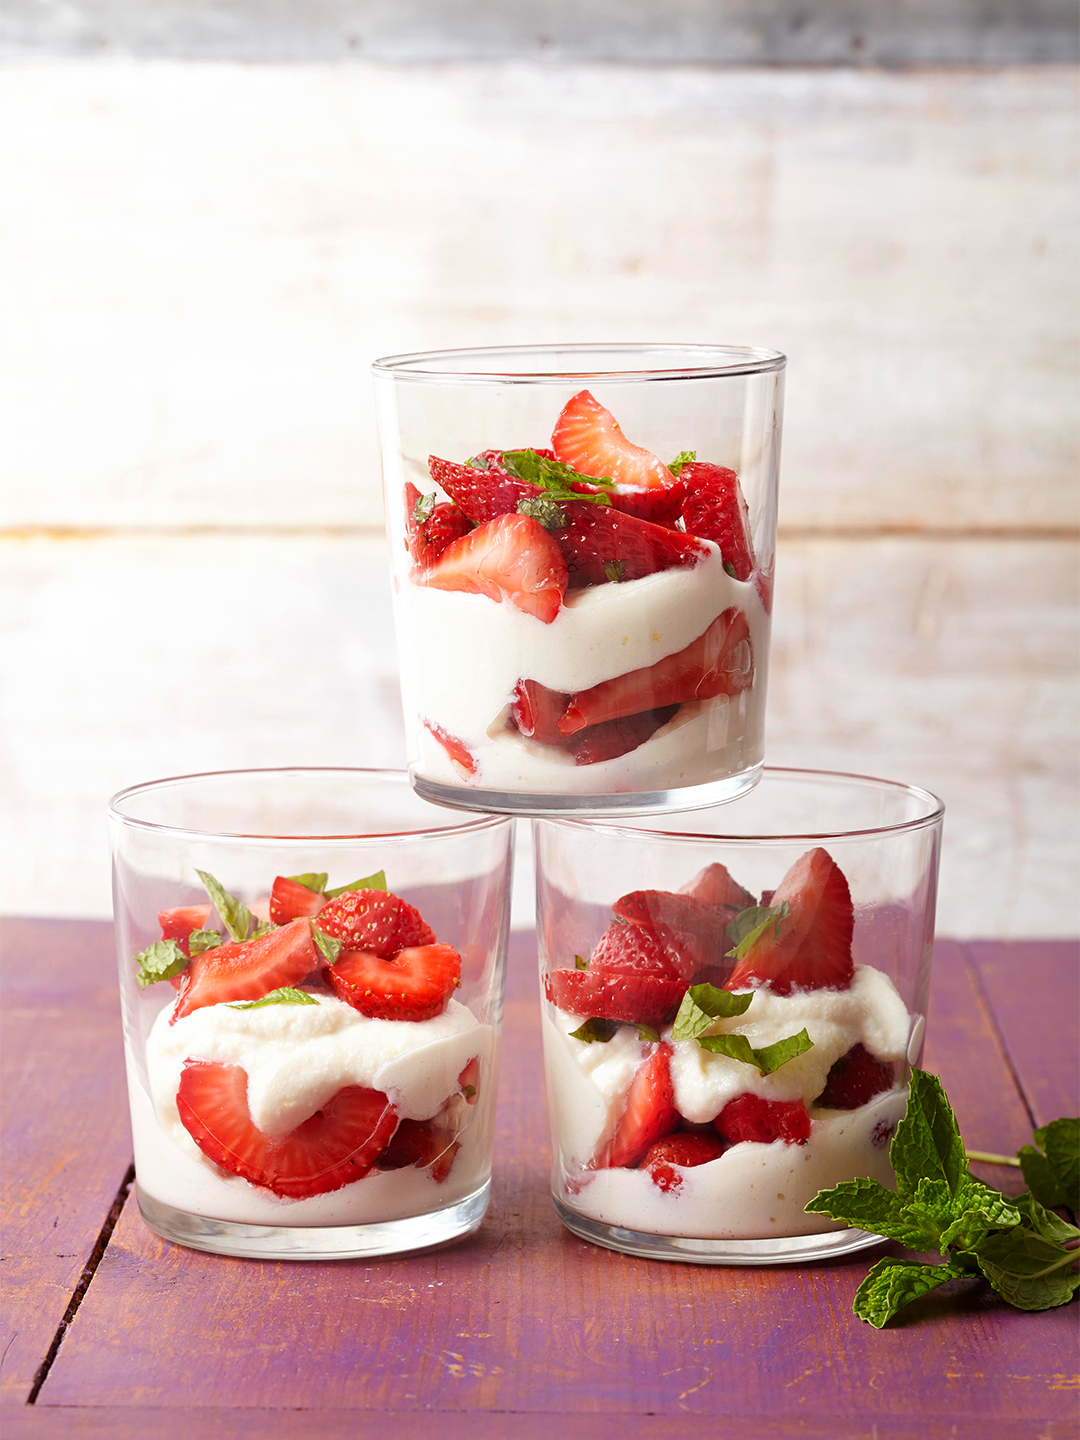 Sweet Ricotta and Strawberry Parfaits in glass jars